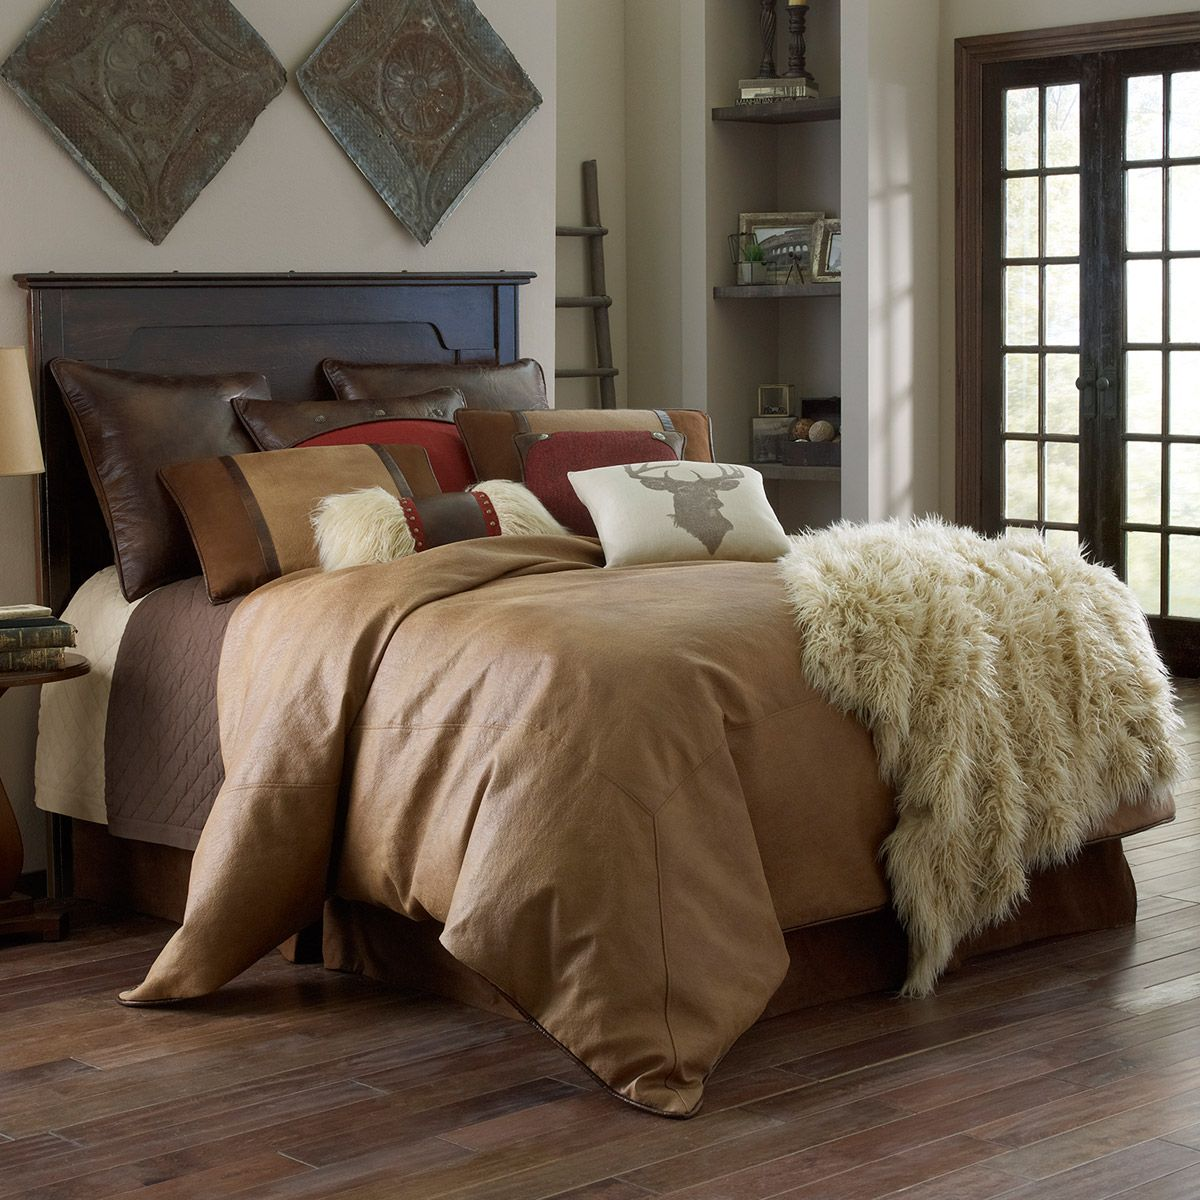 Sand Dune Comforter Set - Super King